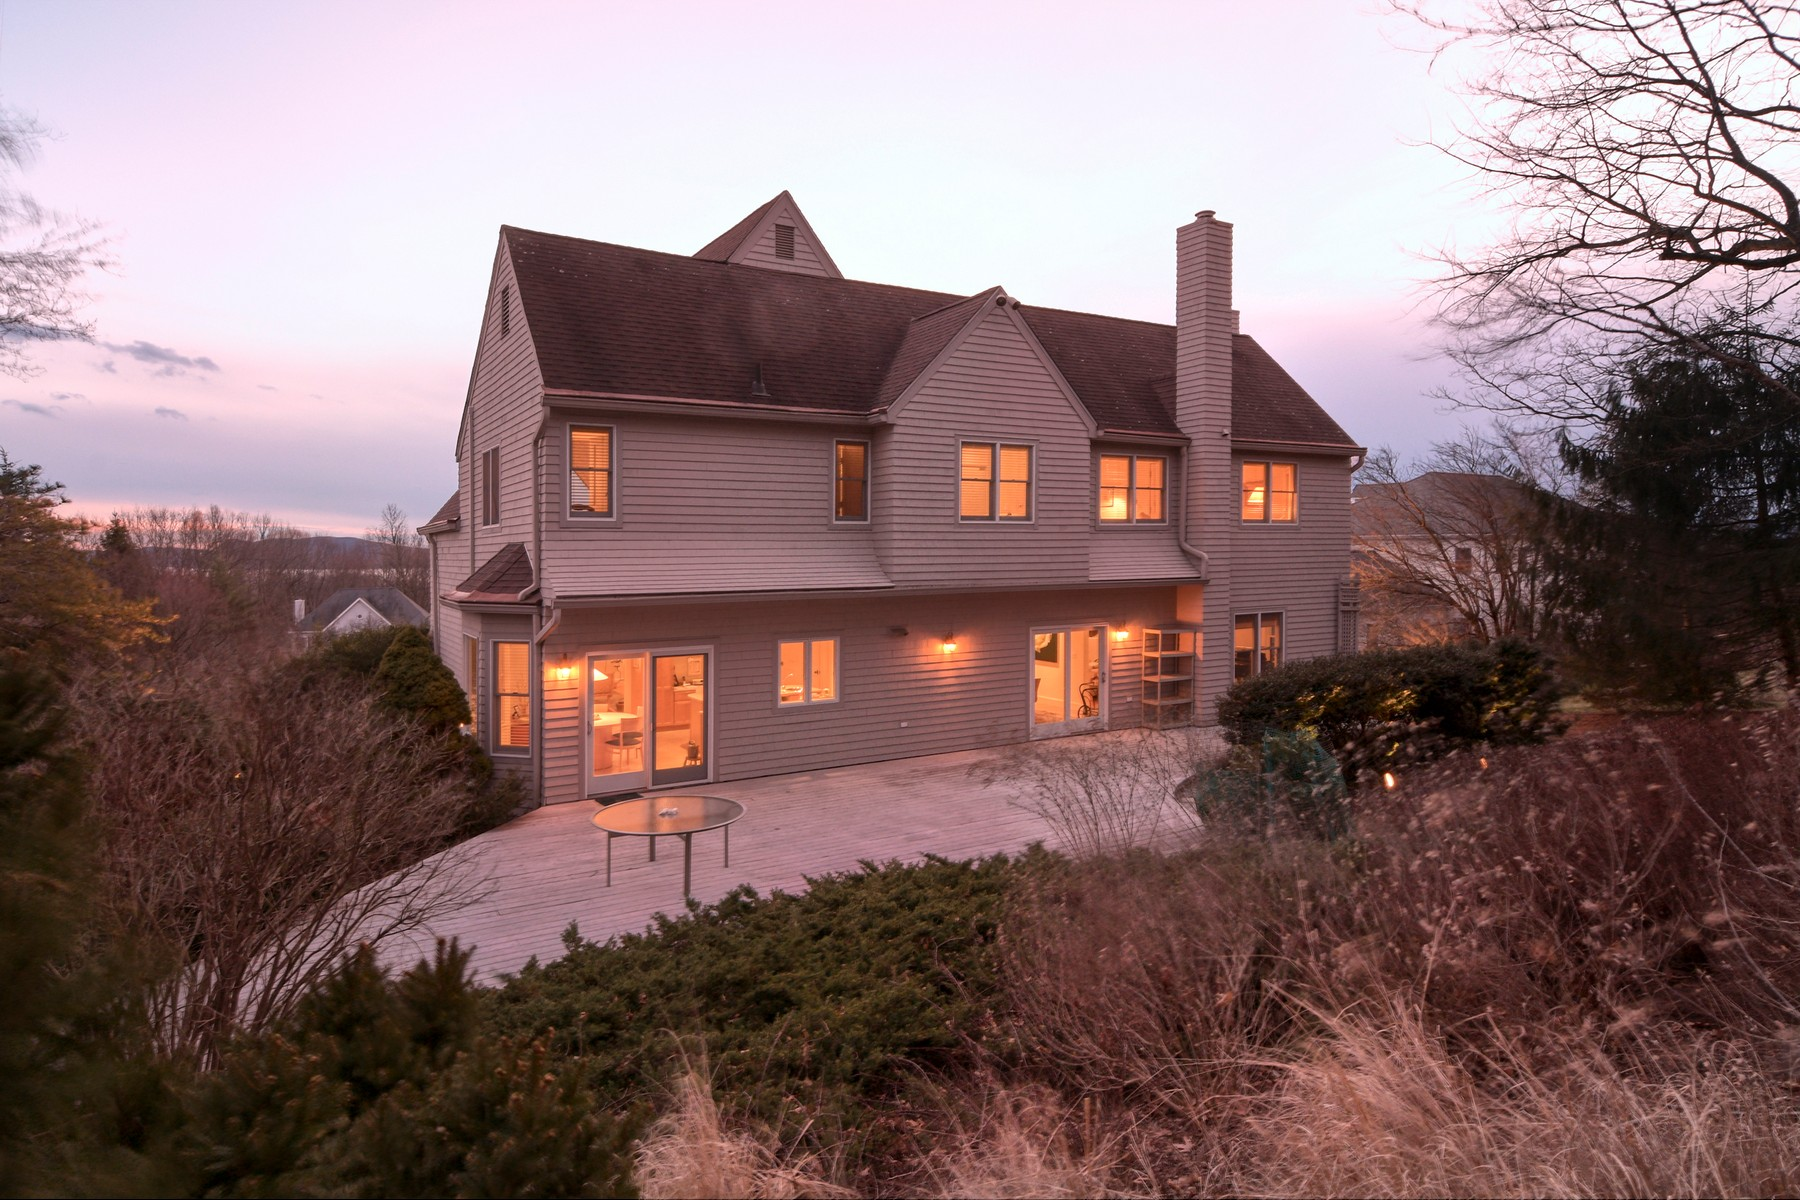 Single Family Homes for Sale at Incredible Views 7 Waterview Drive Ossining, New York 10562 United States